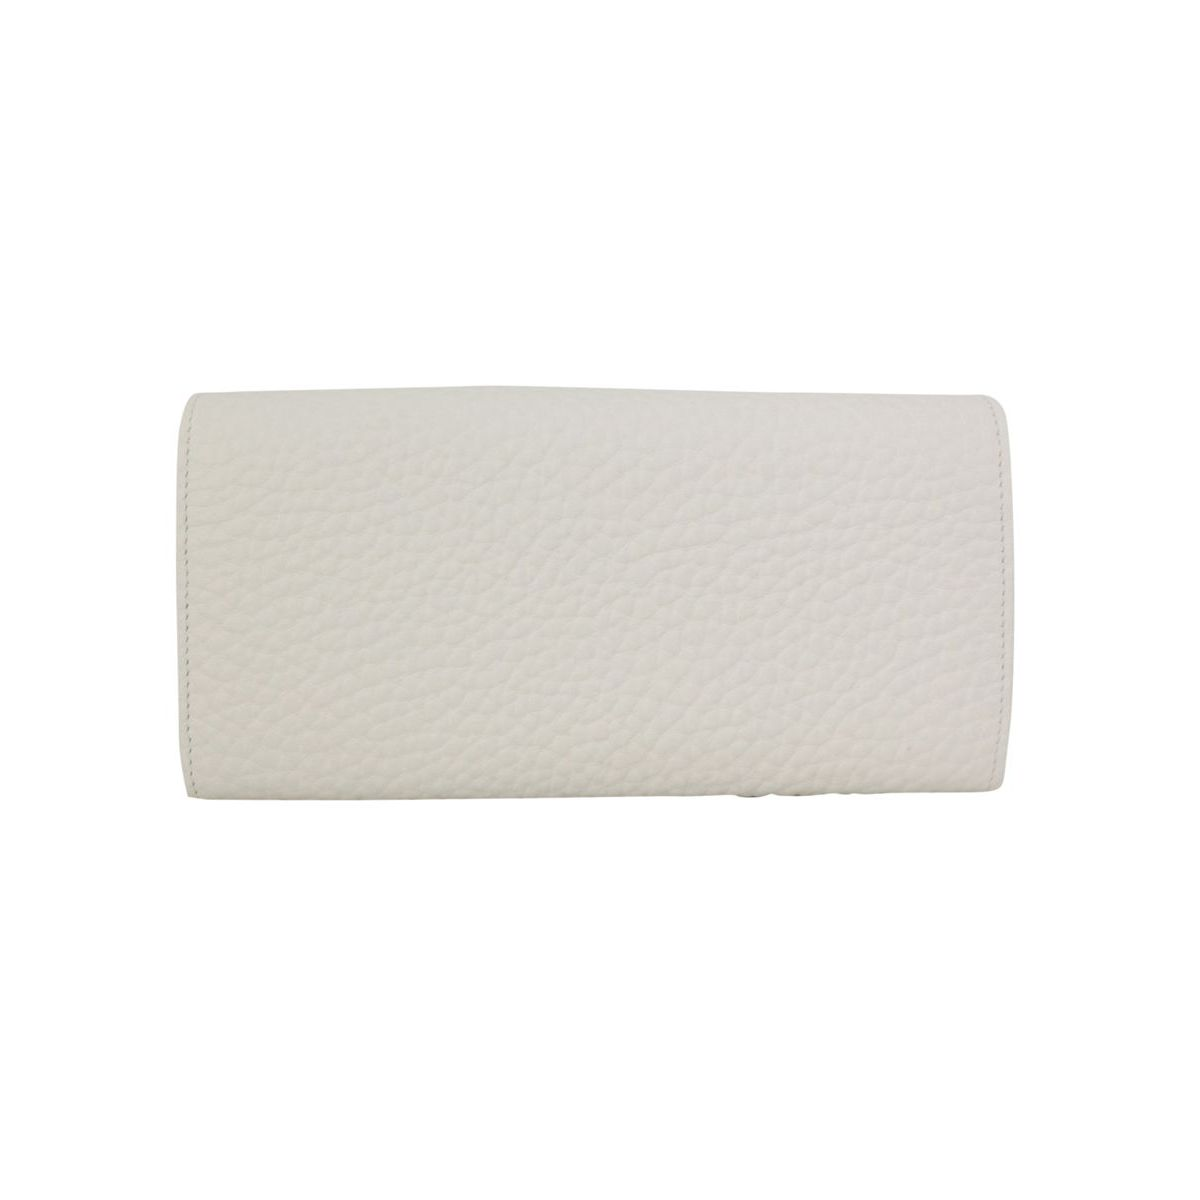 Soft leather wallet White Orciani